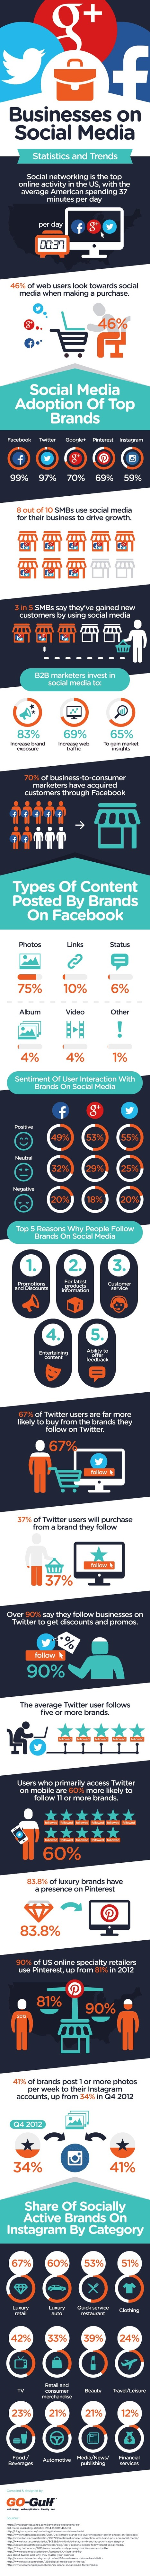 2014 Statistics and Trends for Businesses on Social Media #infographic | digital marketing strategy | Scoop.it